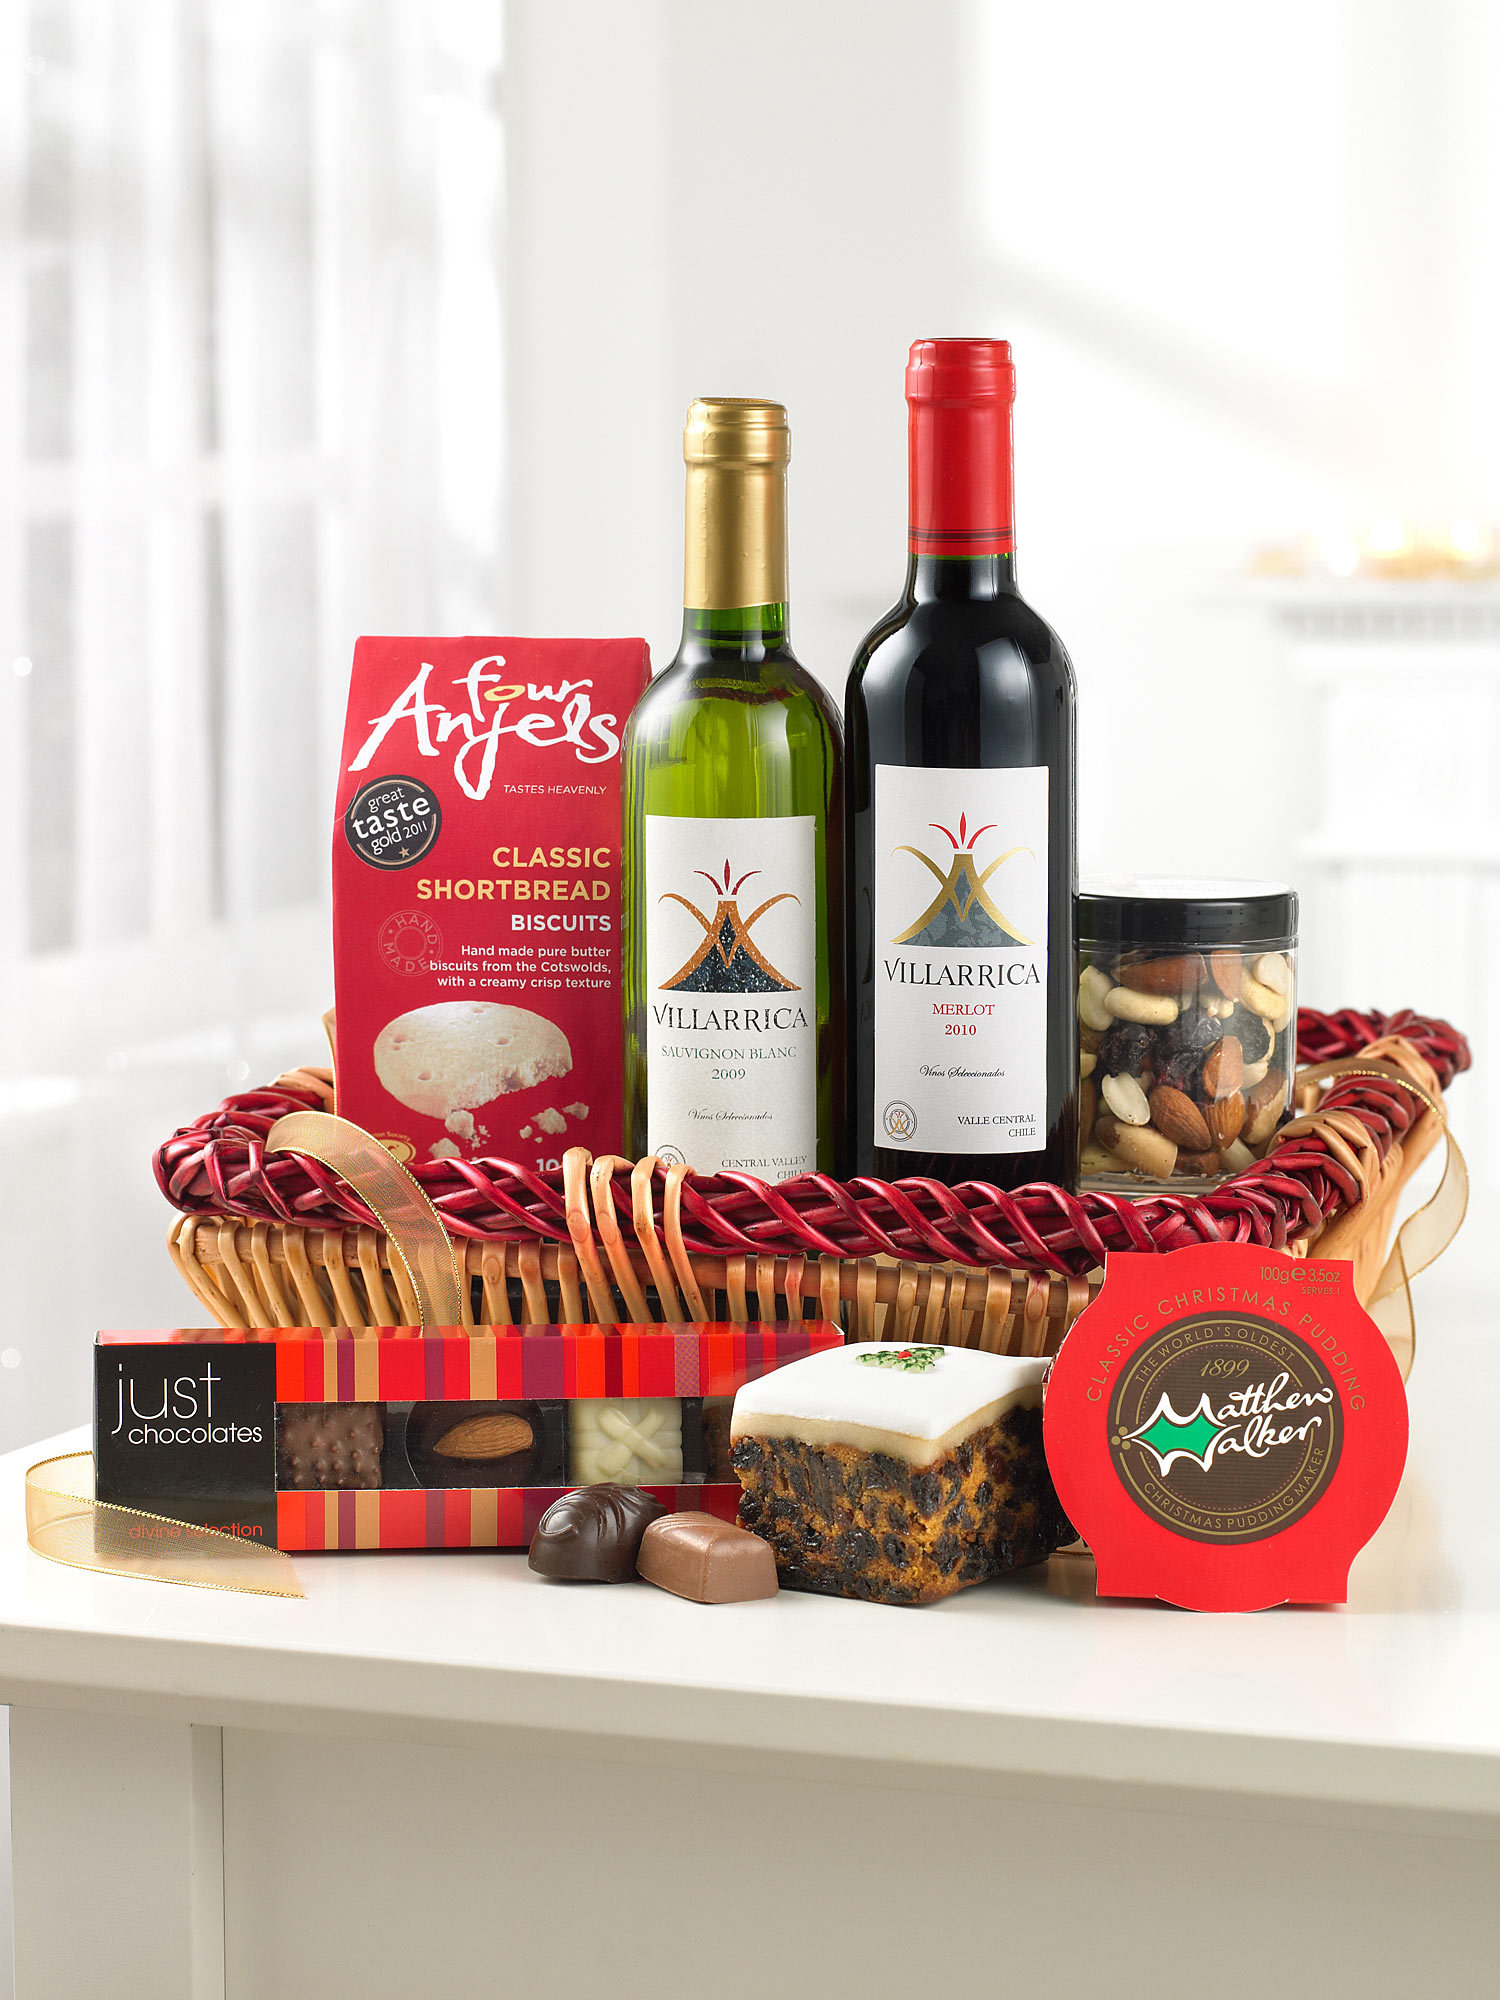 Review: Delicious Interflora Christmas Hampers